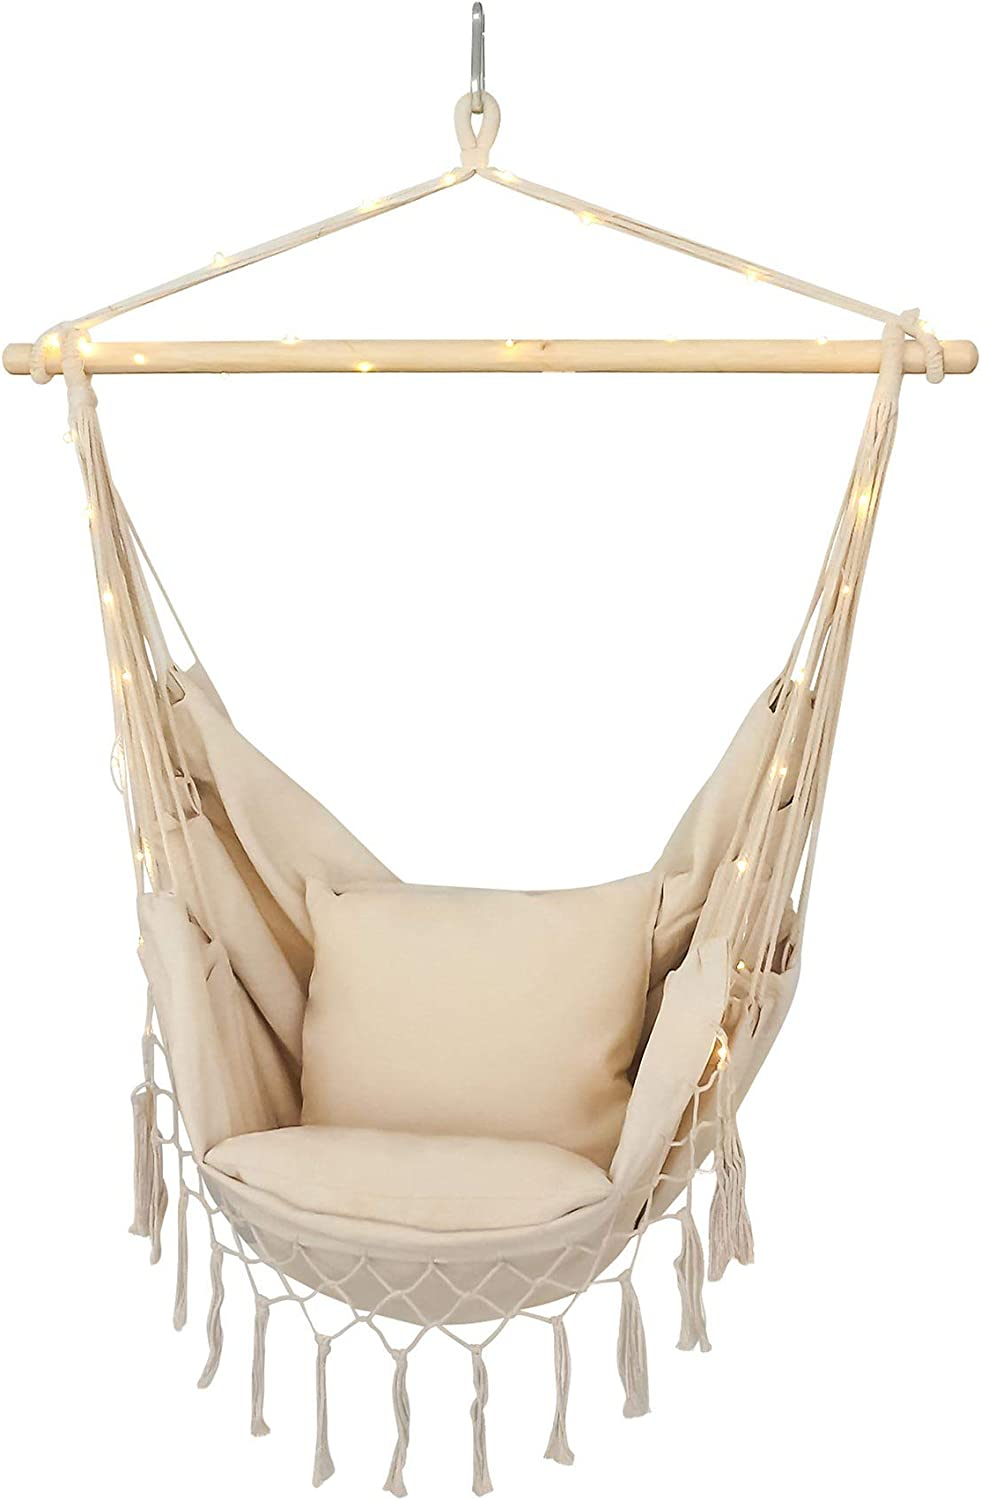 Hammock Popular Chair Made From Soft Durable Extra Including Cotton New Ultra-Cheap Deals